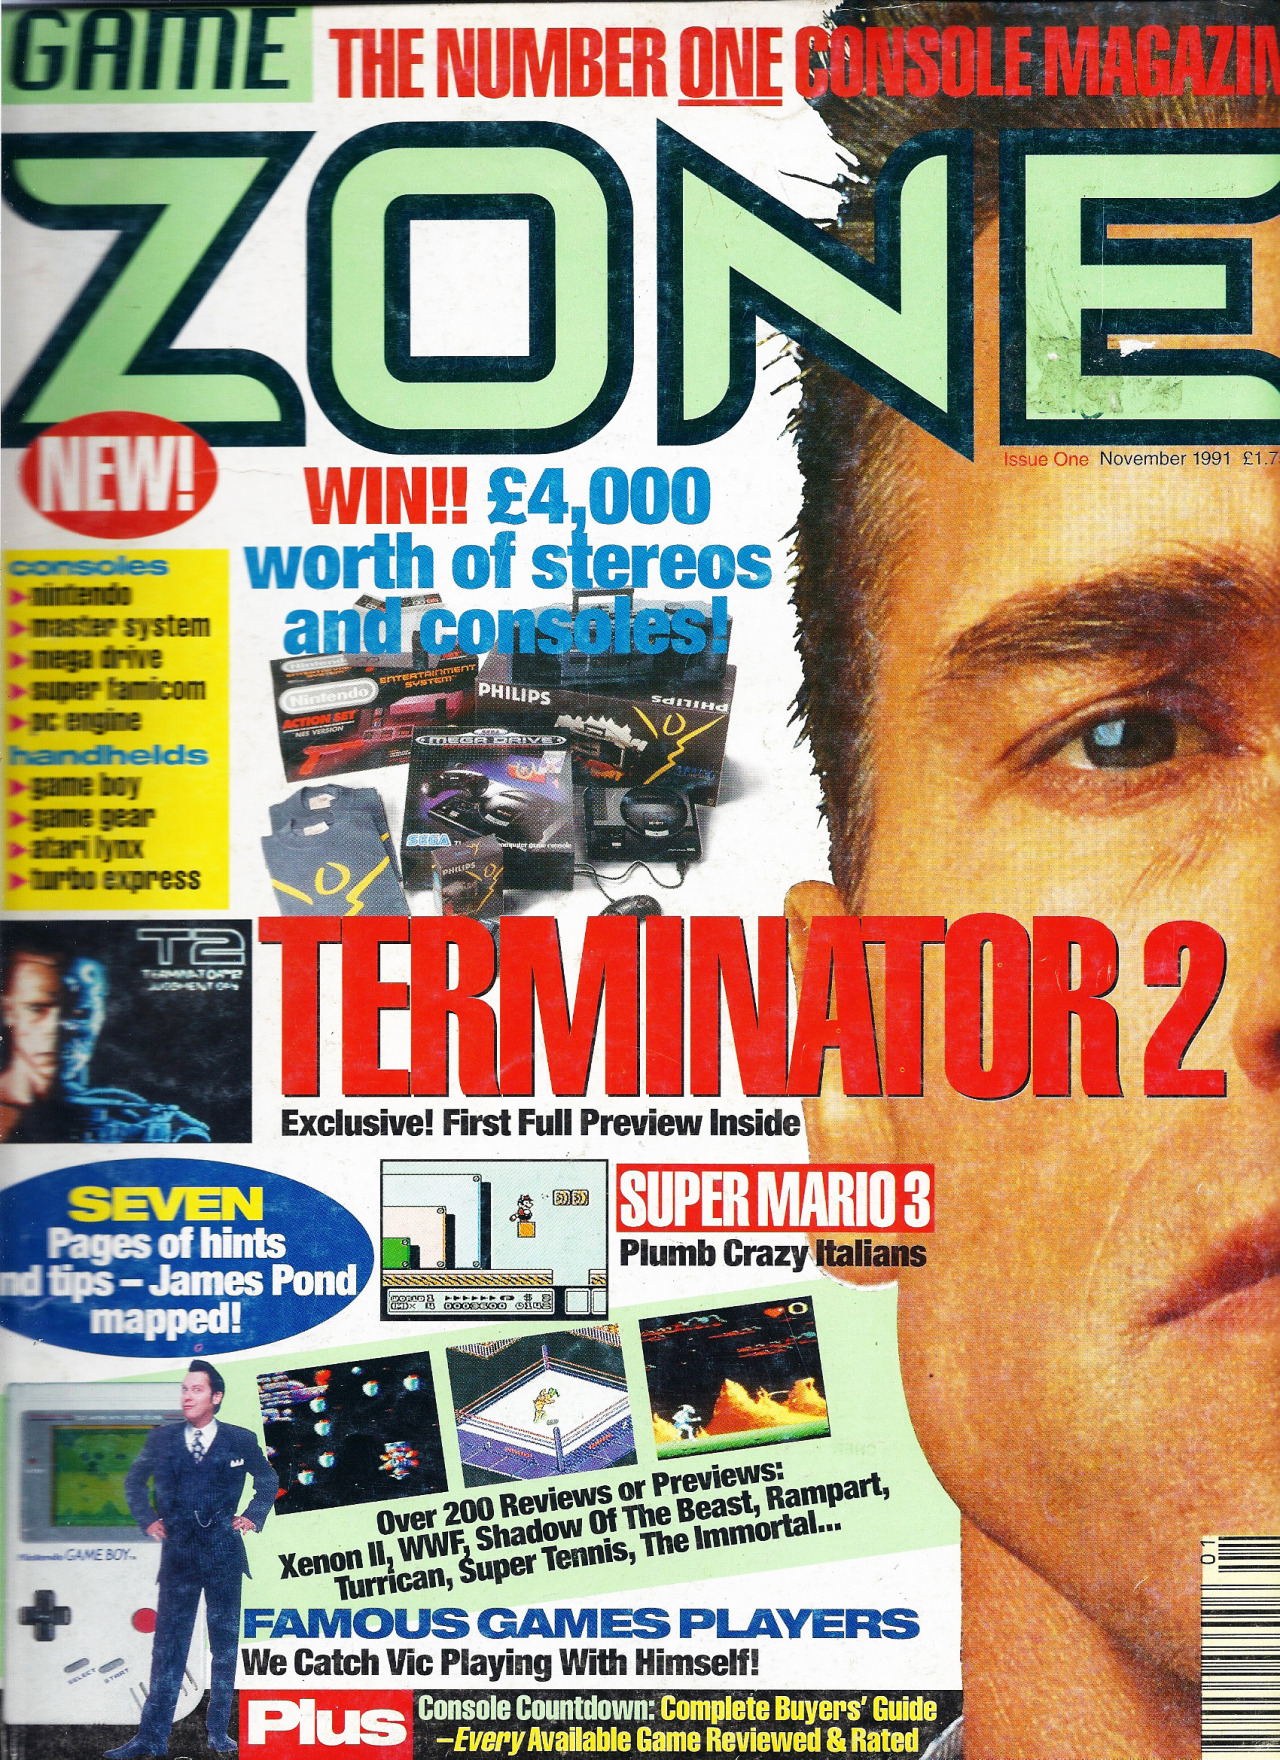 Console Magazine Old Game Mags Game Zone Magazine Claims To The Be The The